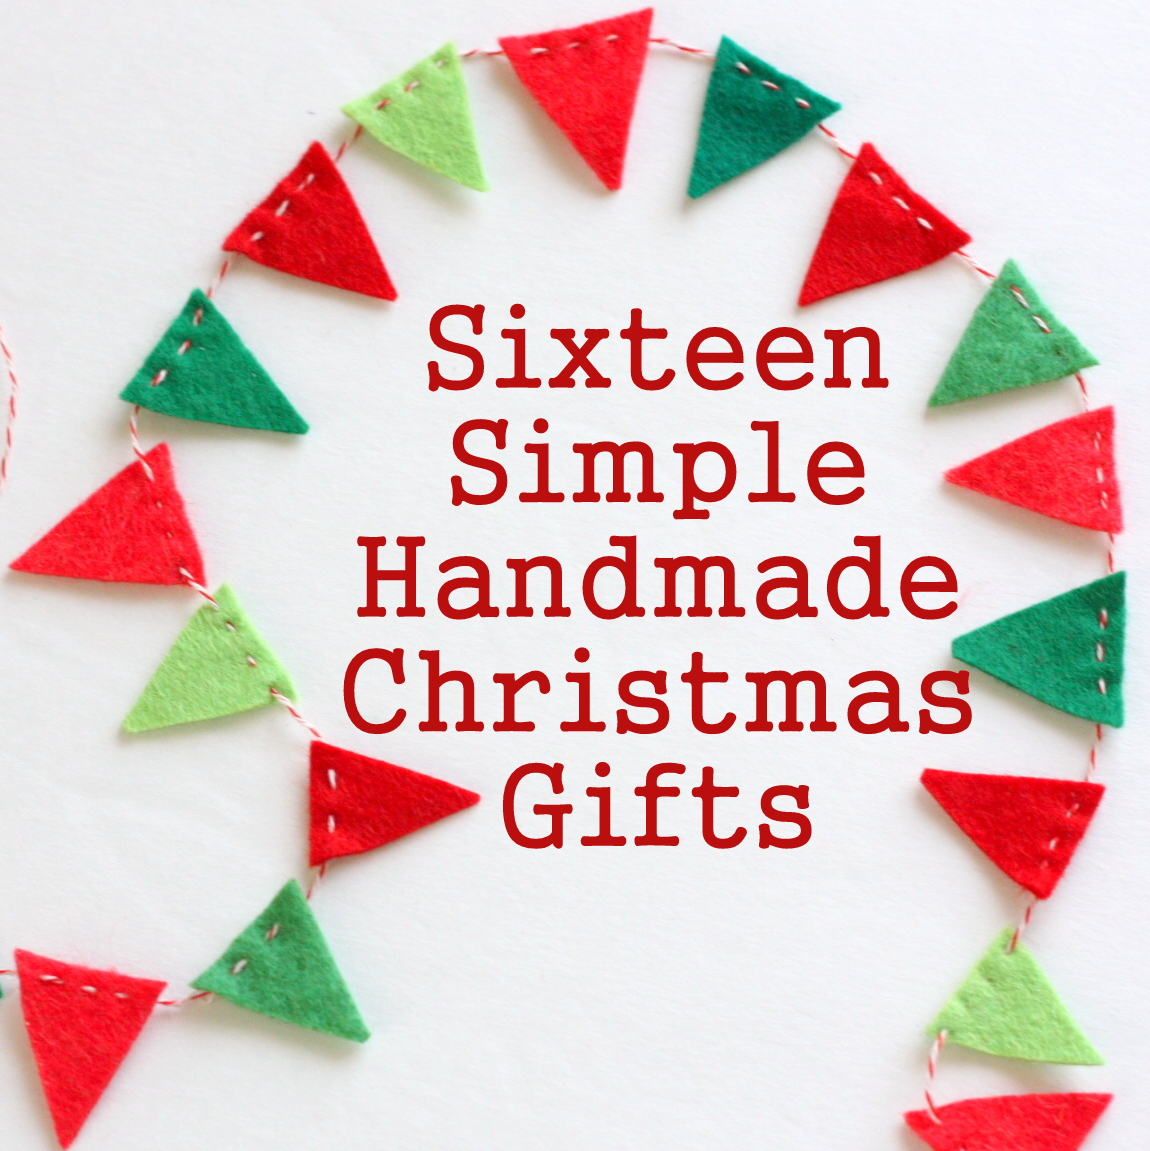 Handmade Christmas Gifts For Kids: 16 Simple Handmade Christmas Gift Tutorials